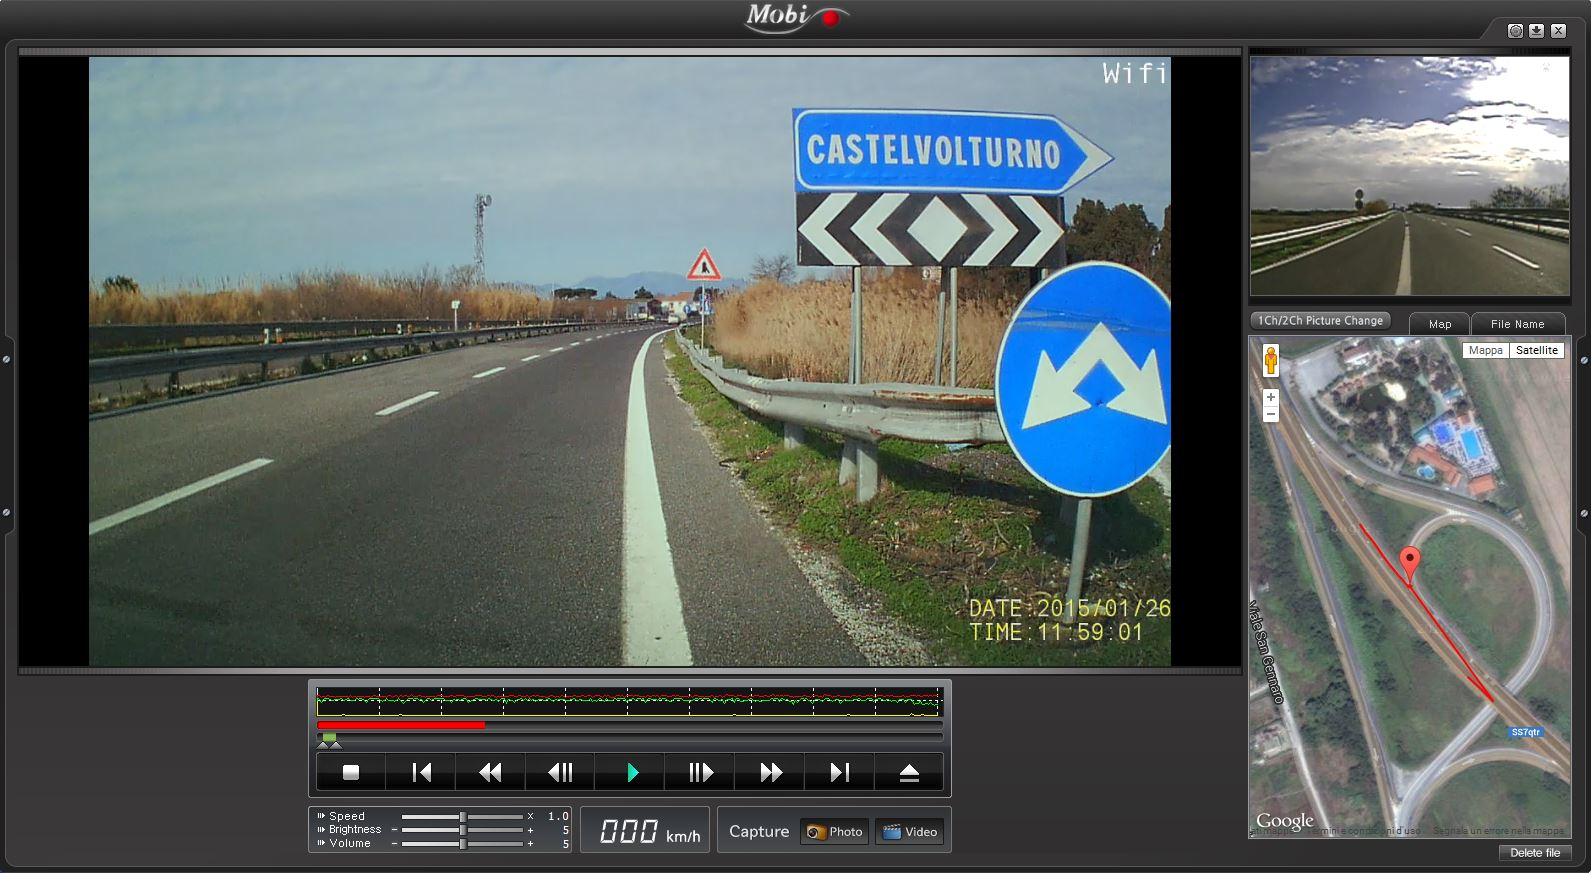 video georeferenziato con doppia camera